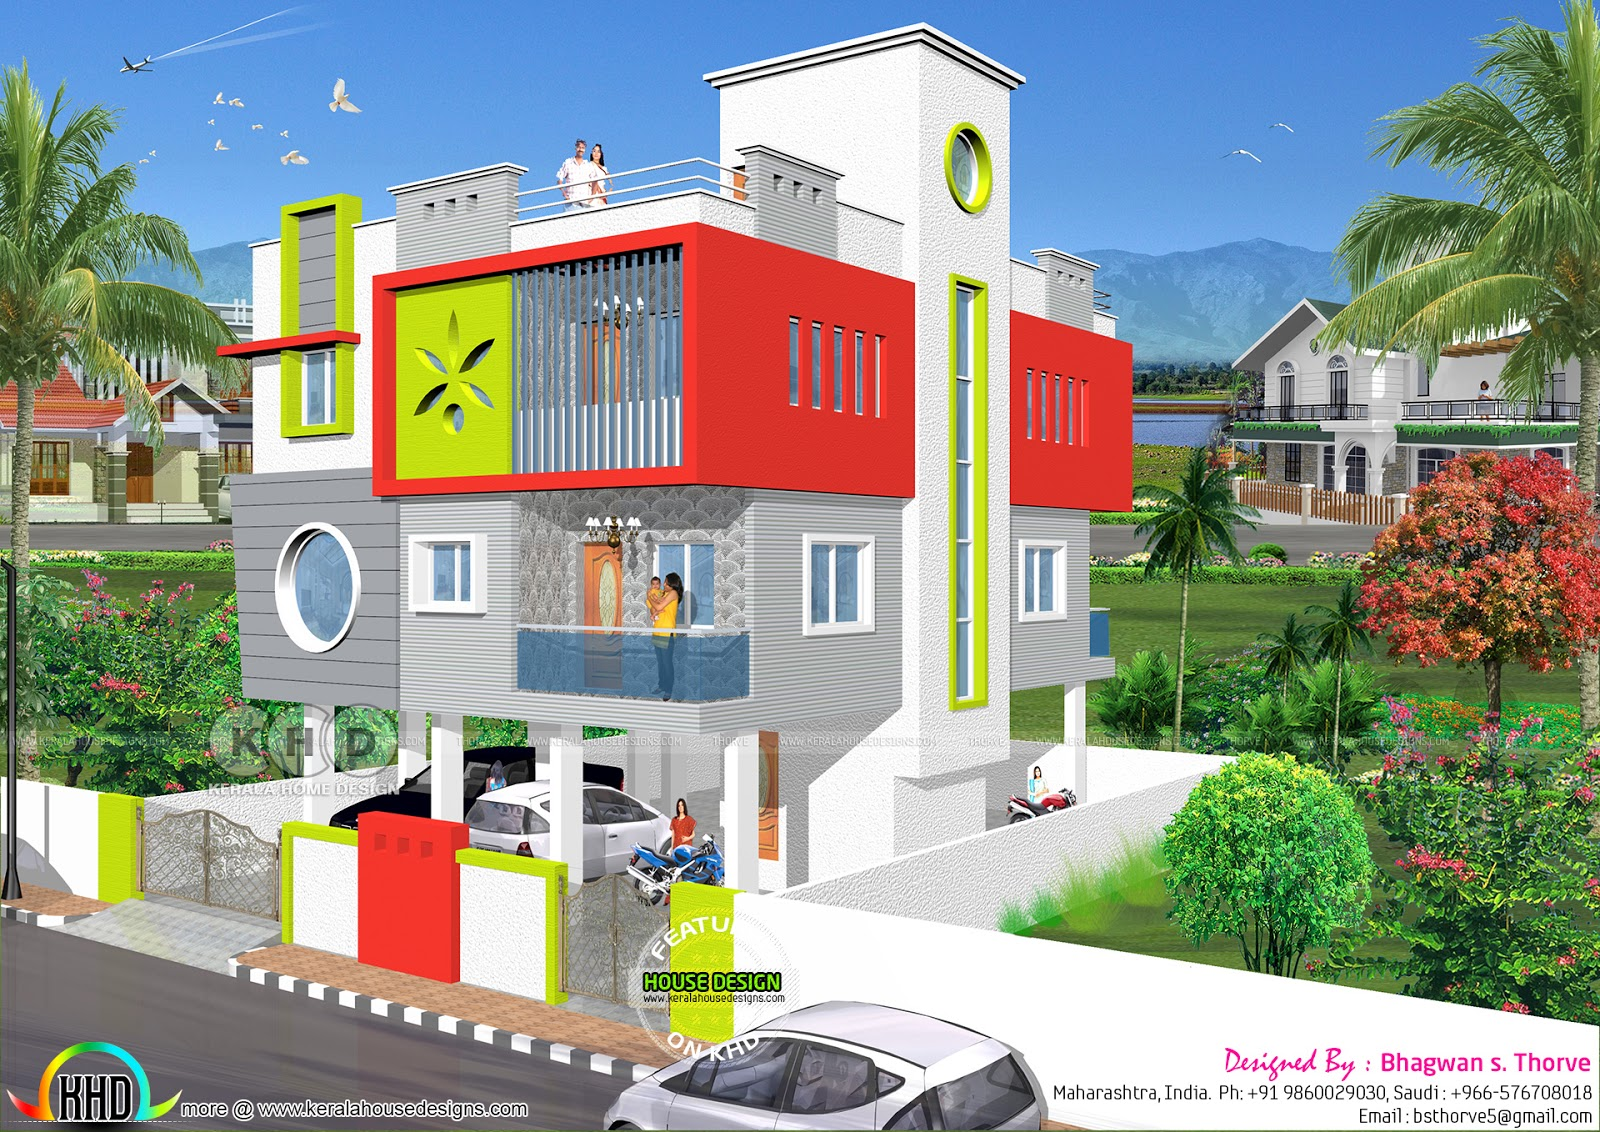 Modern north indian style house with stilt floor kerala for North indian house designs photos